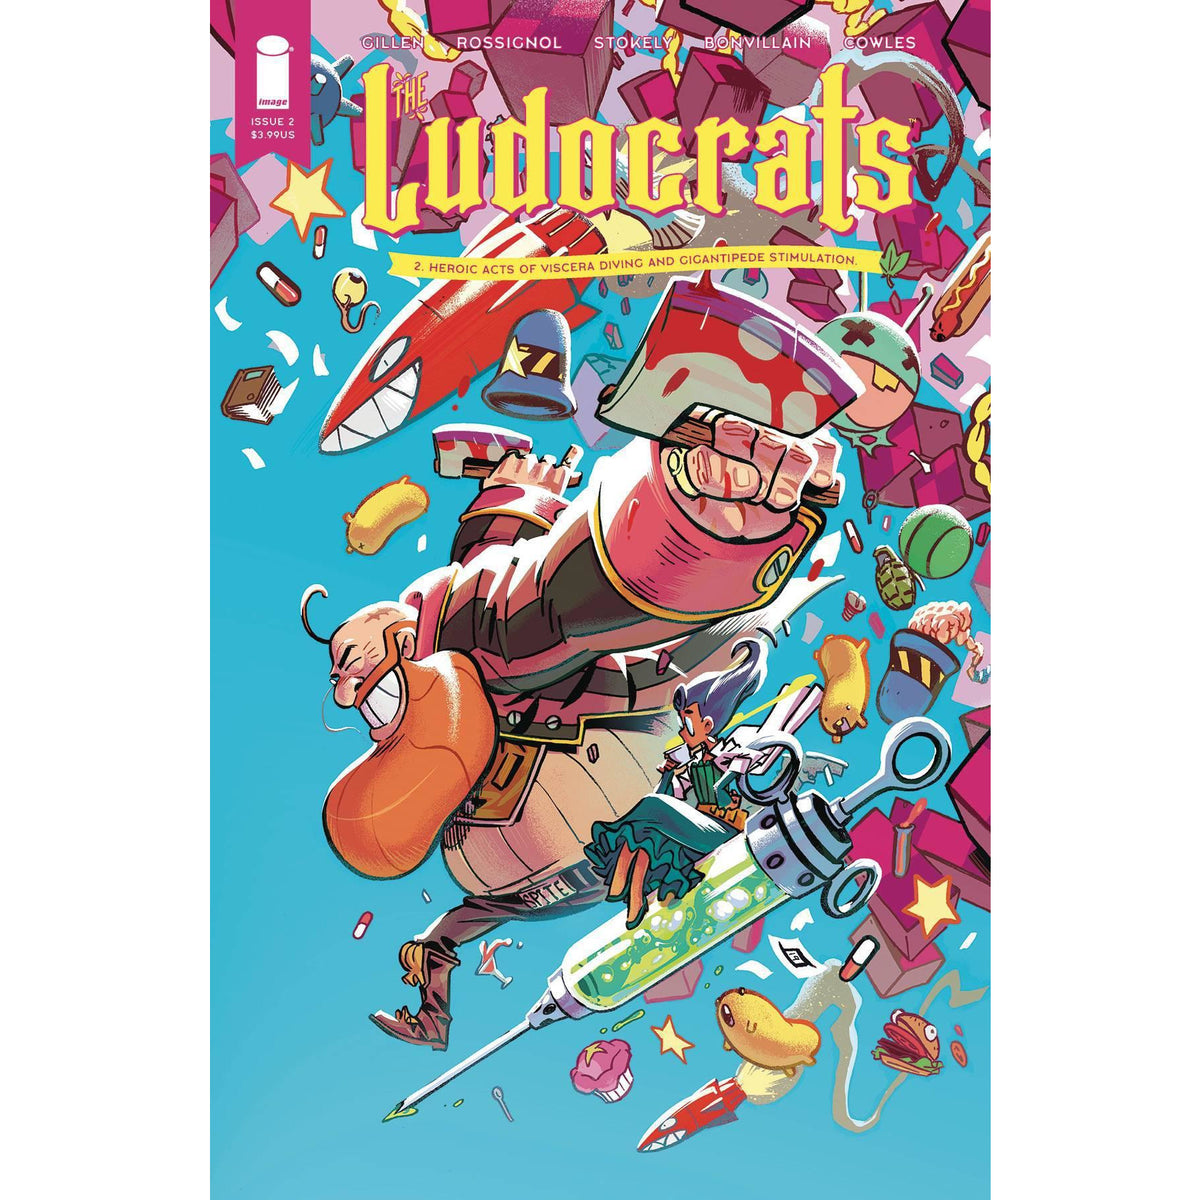 LUDOCRATS #2 (OF 5) - COVER A STOKELY